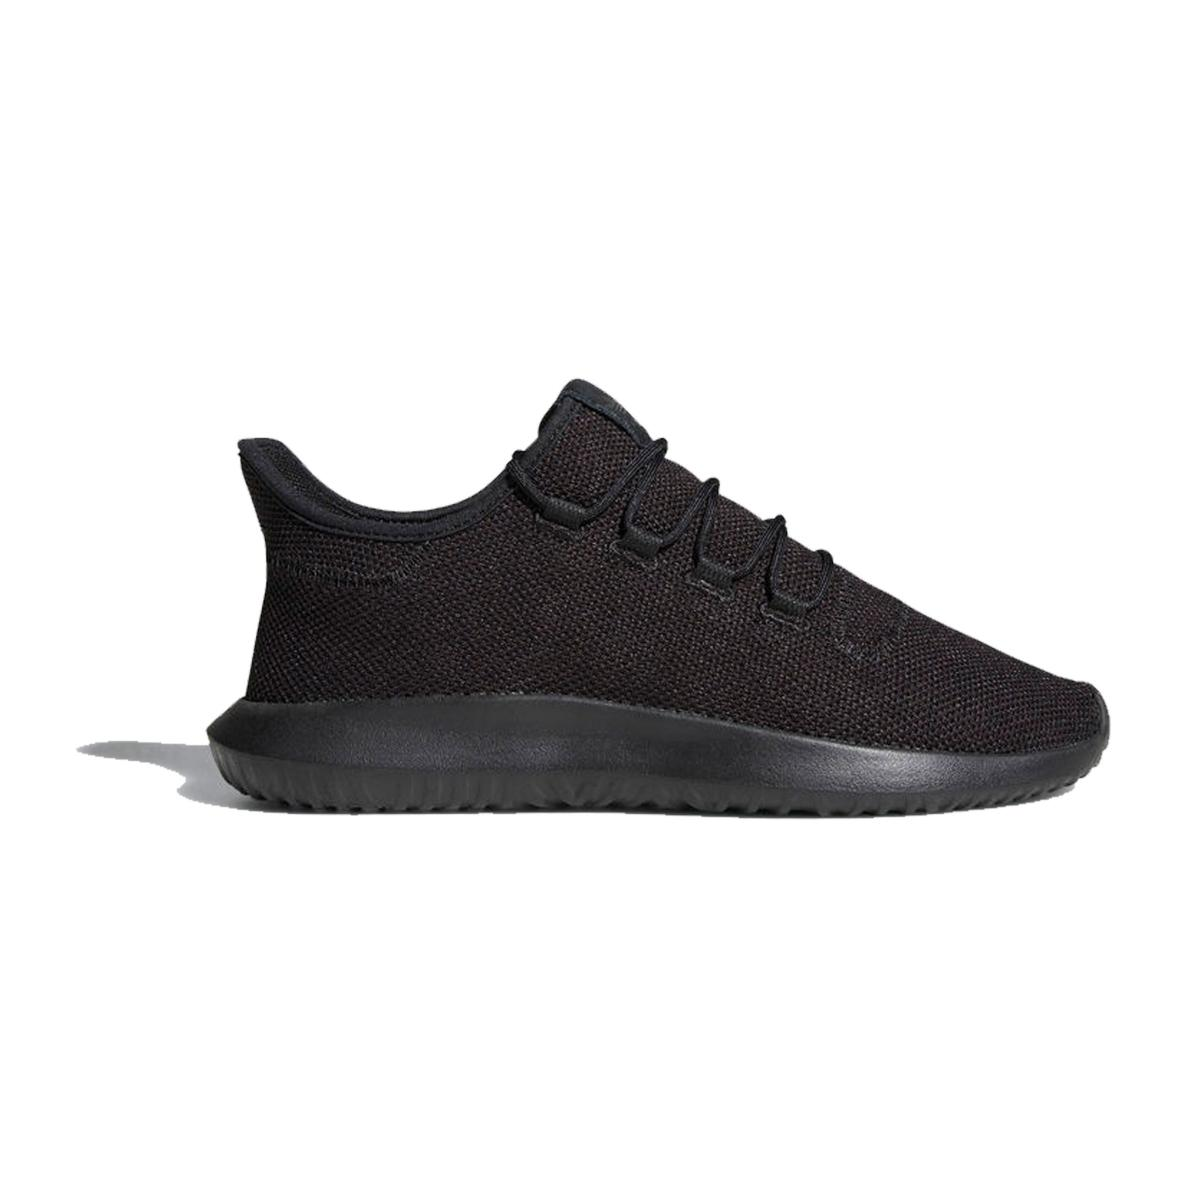 Scarpe Running Adidas Originals Tubular Shadow rif. CG4562